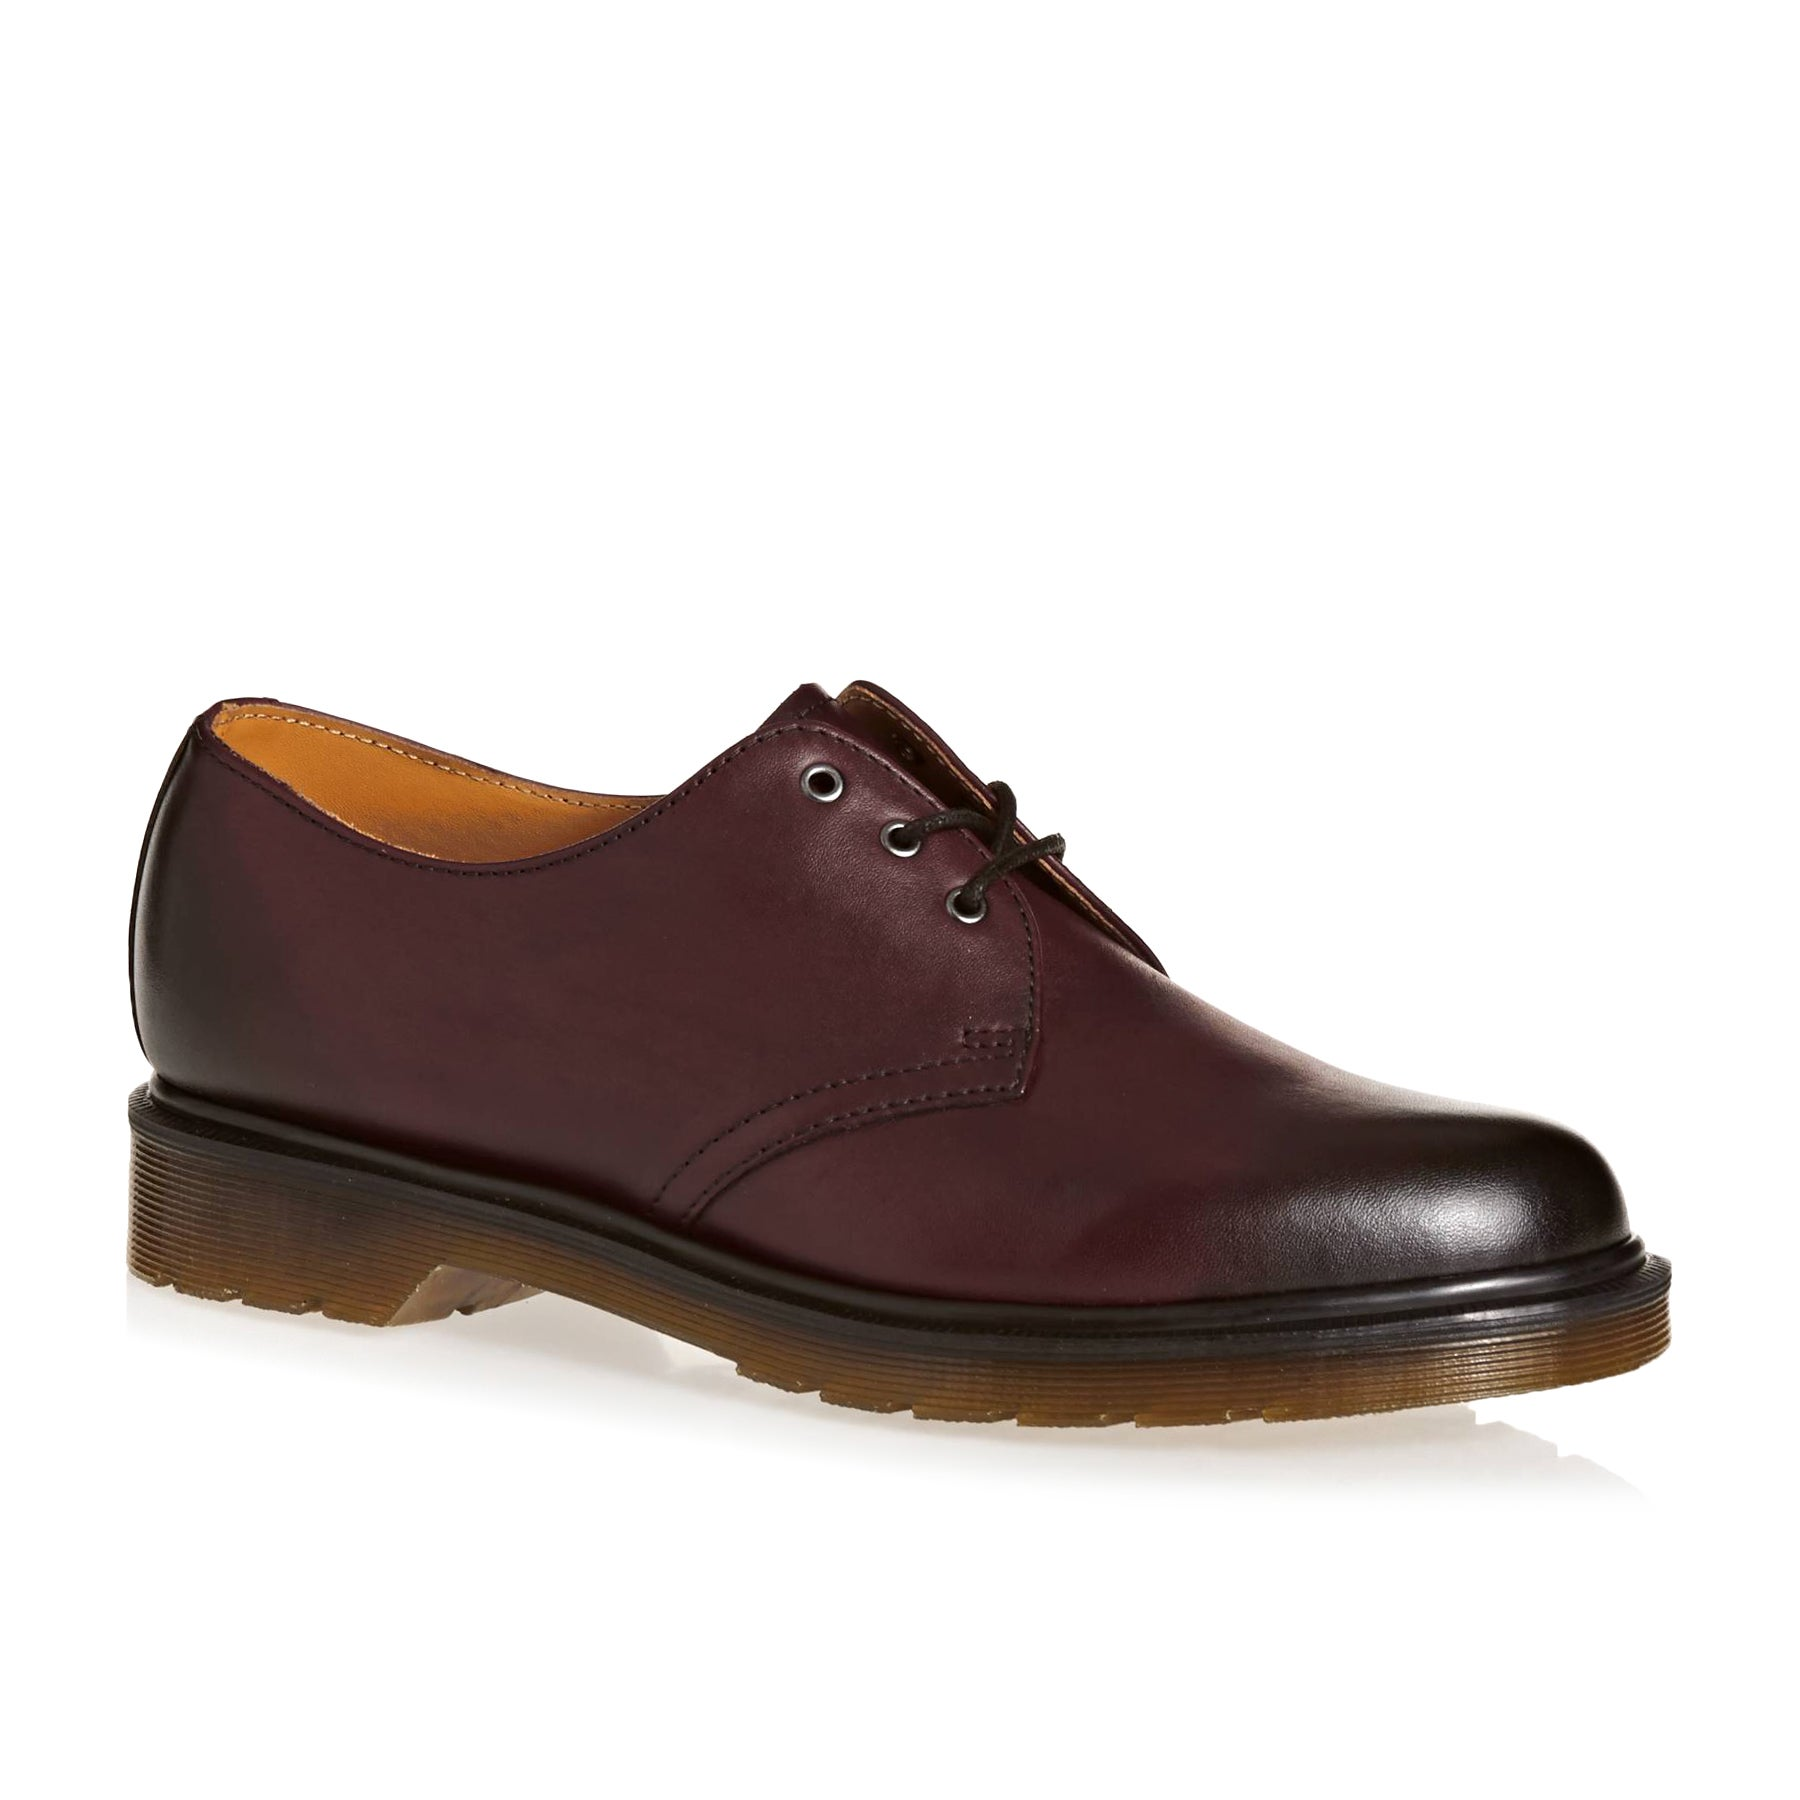 Chaussures Dr Martens 1461 - Cherry Red Temperley Wf